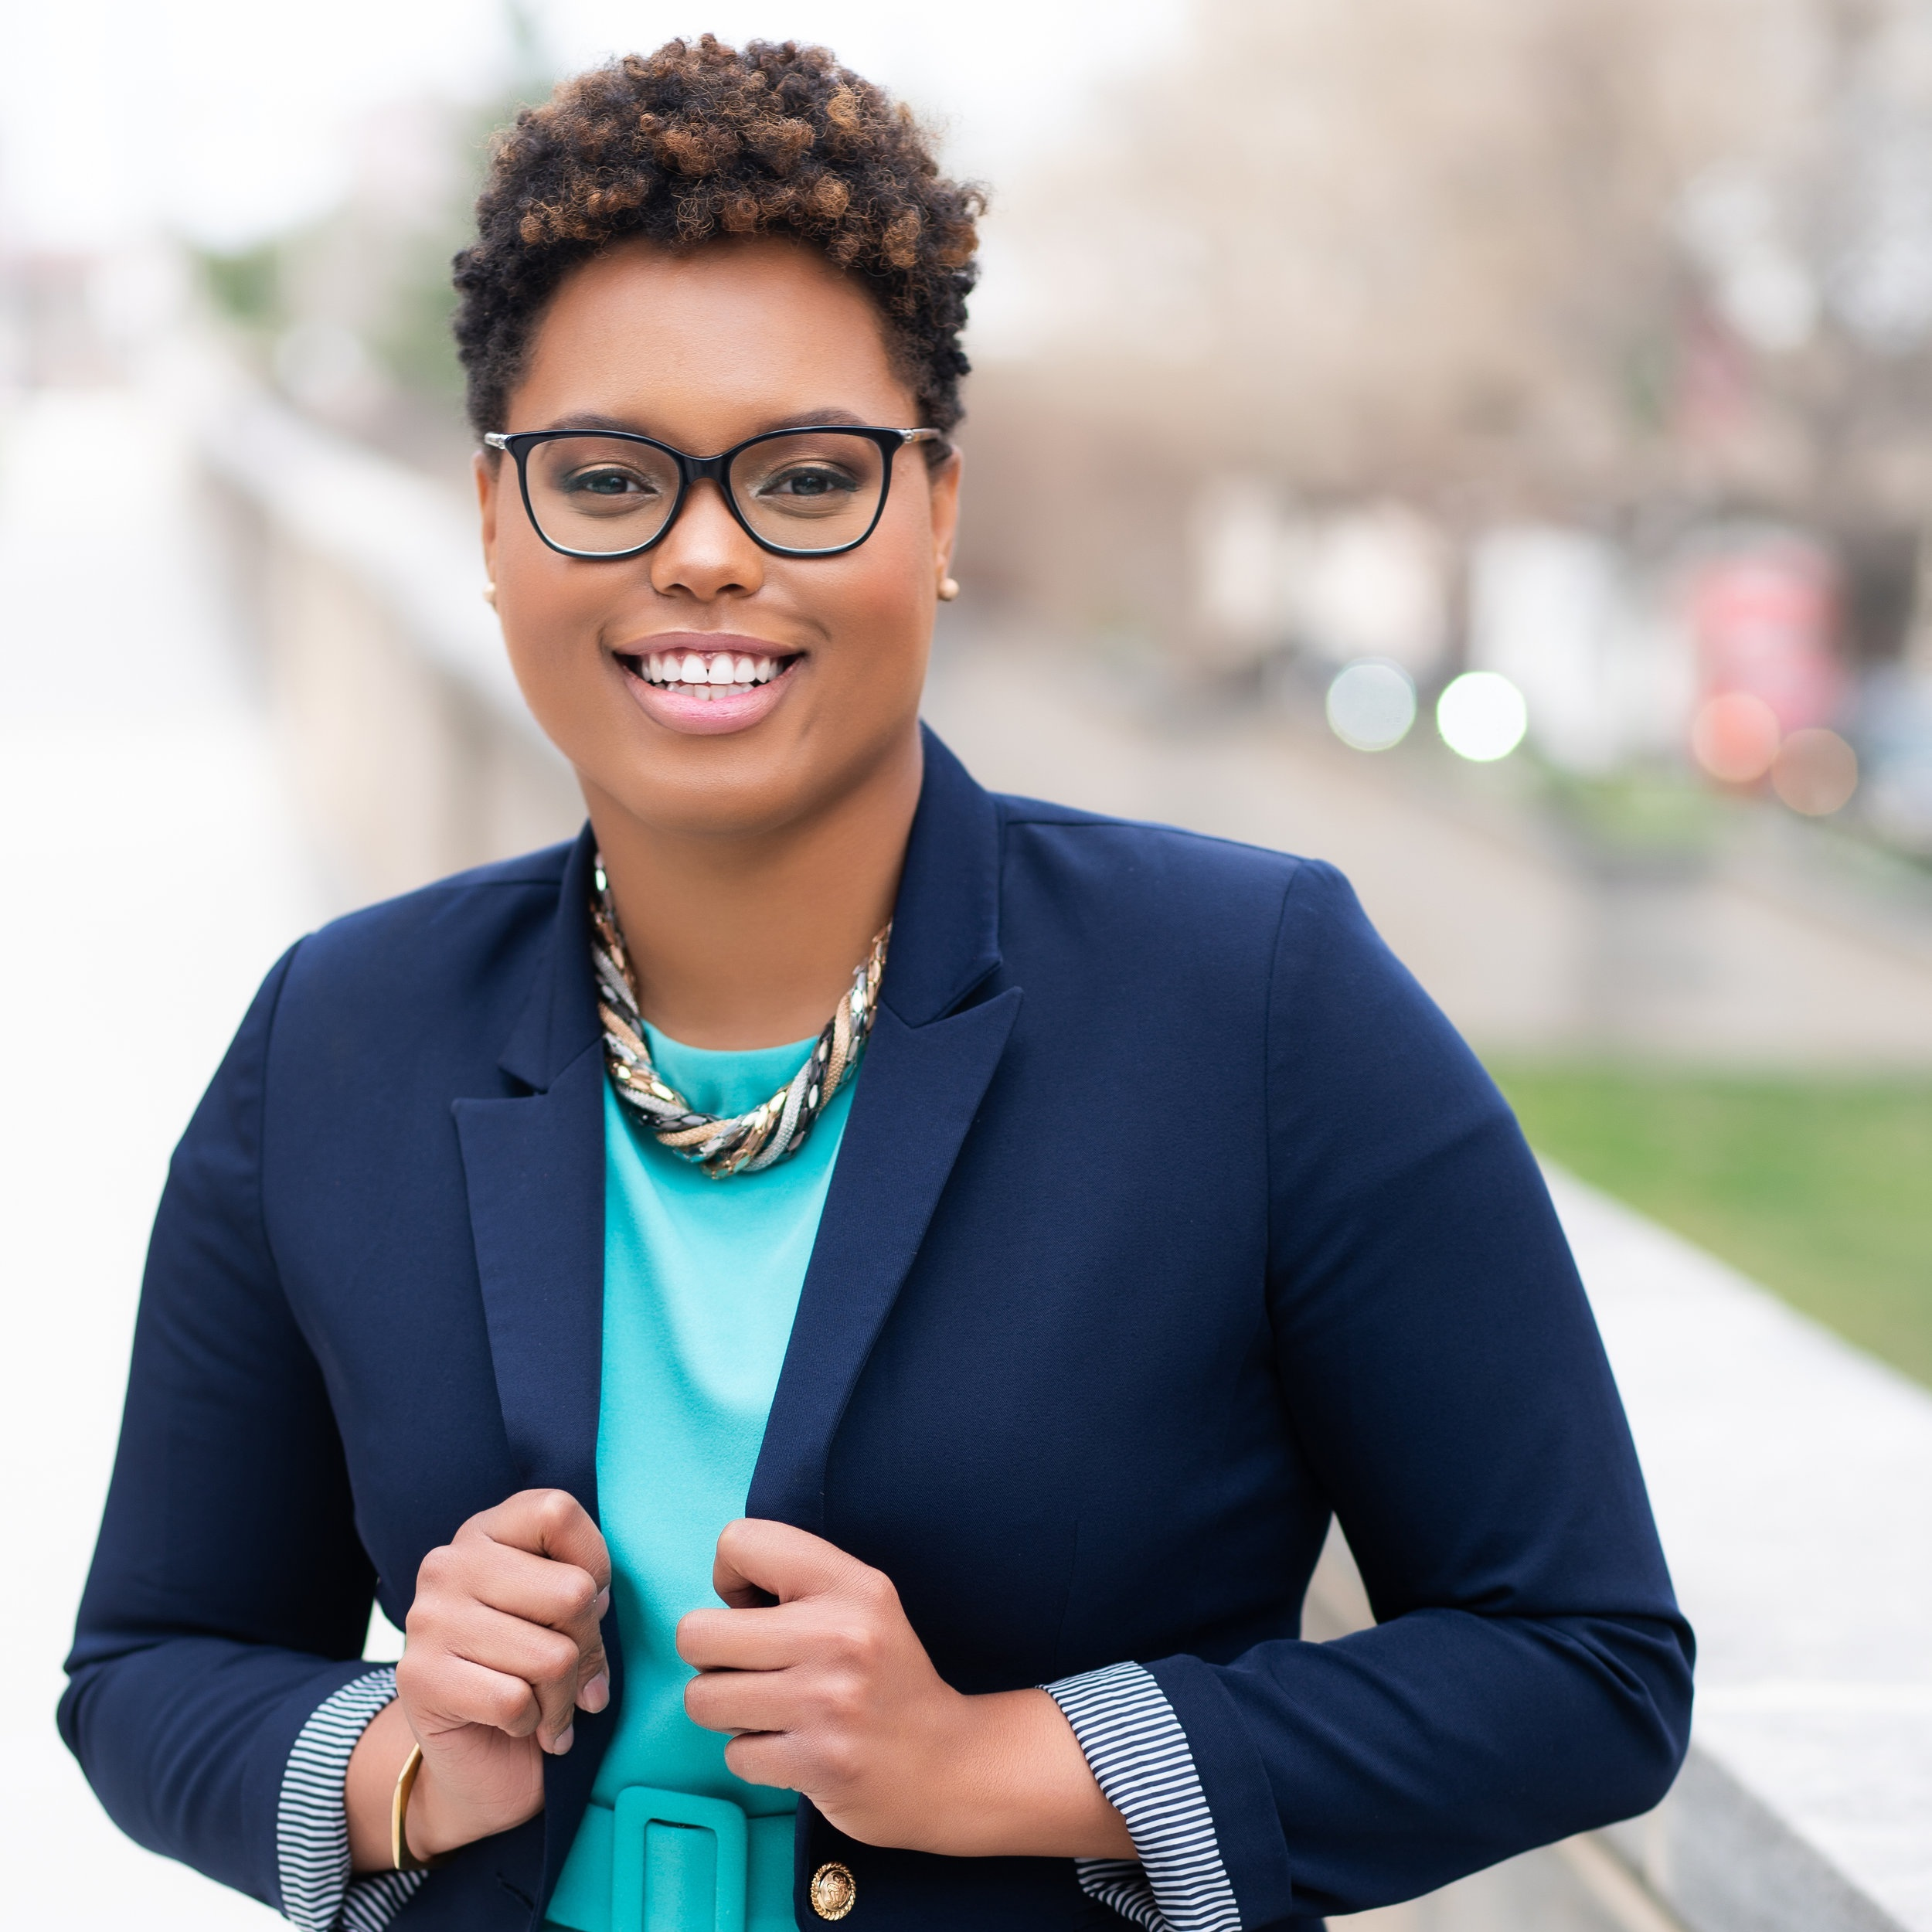 Voyage Chicago - Meet Shayna Atkins of AtkCo Inc in South Loop and Printers Row